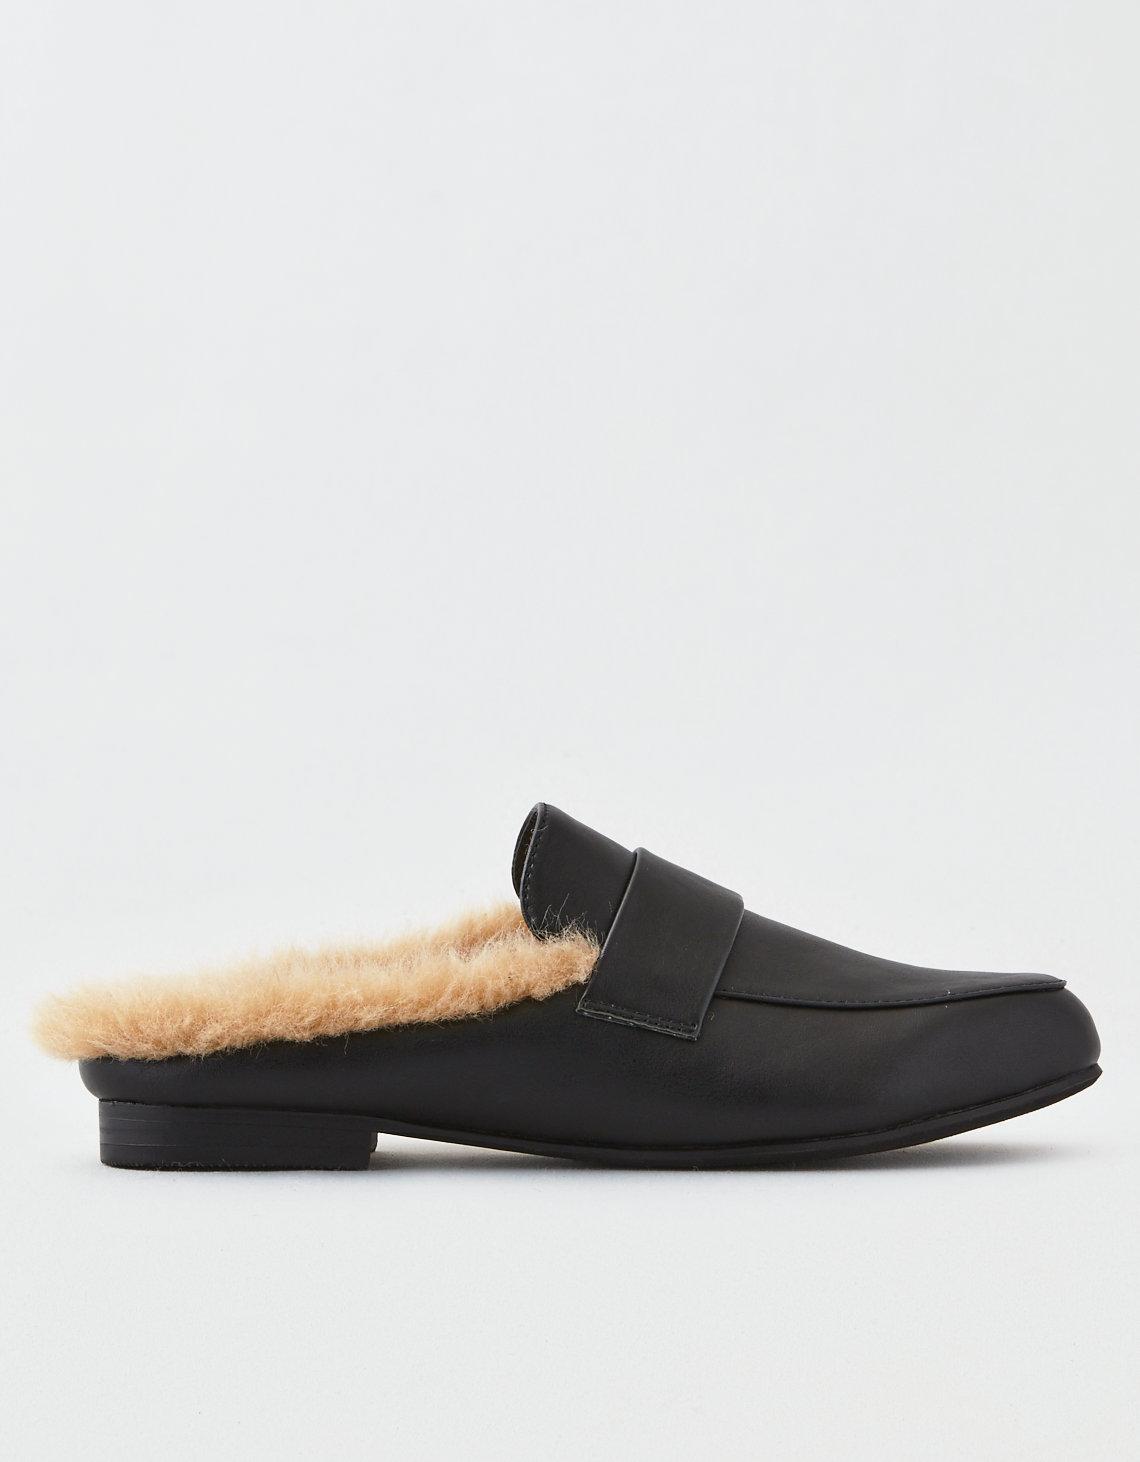 9e9e61563d5 AEO Fur Lined Loafer Mule. Placeholder image. Product Image